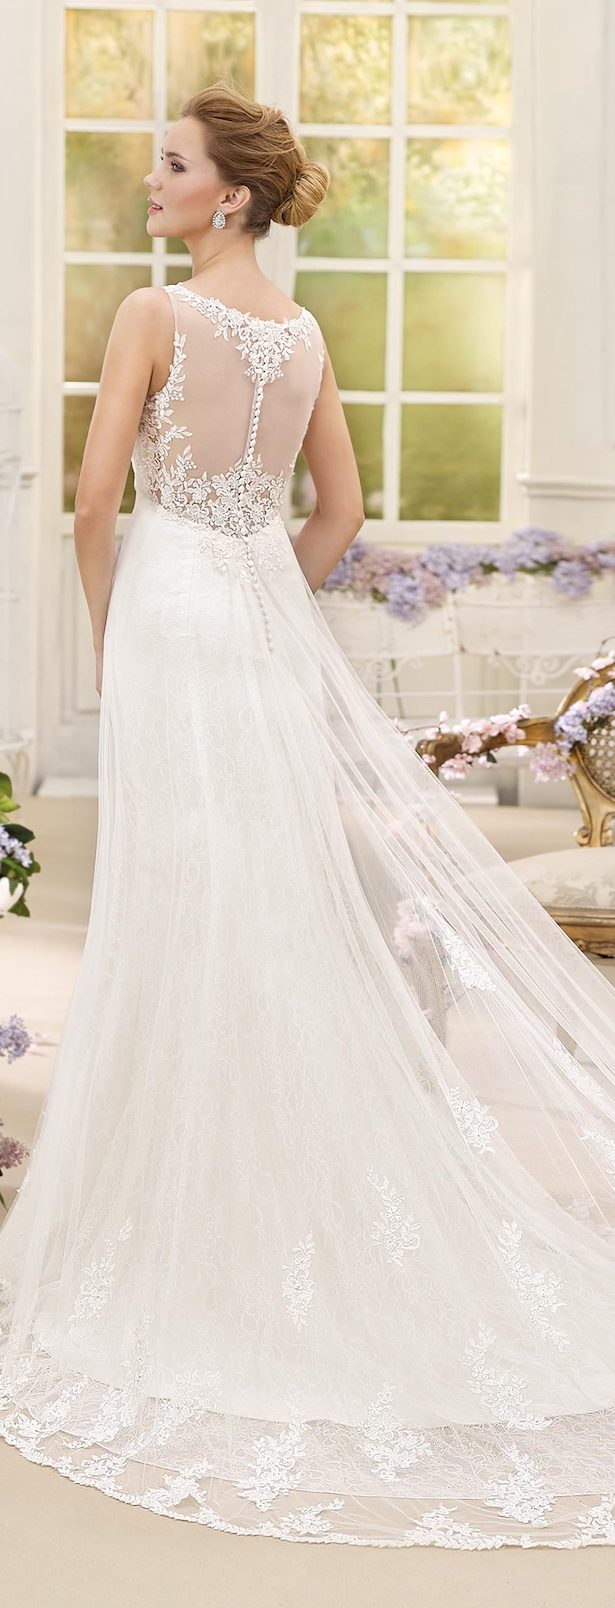 Wedding dress by fara sposa 2017 bridal collection belle for Romantic ethereal wedding dresses